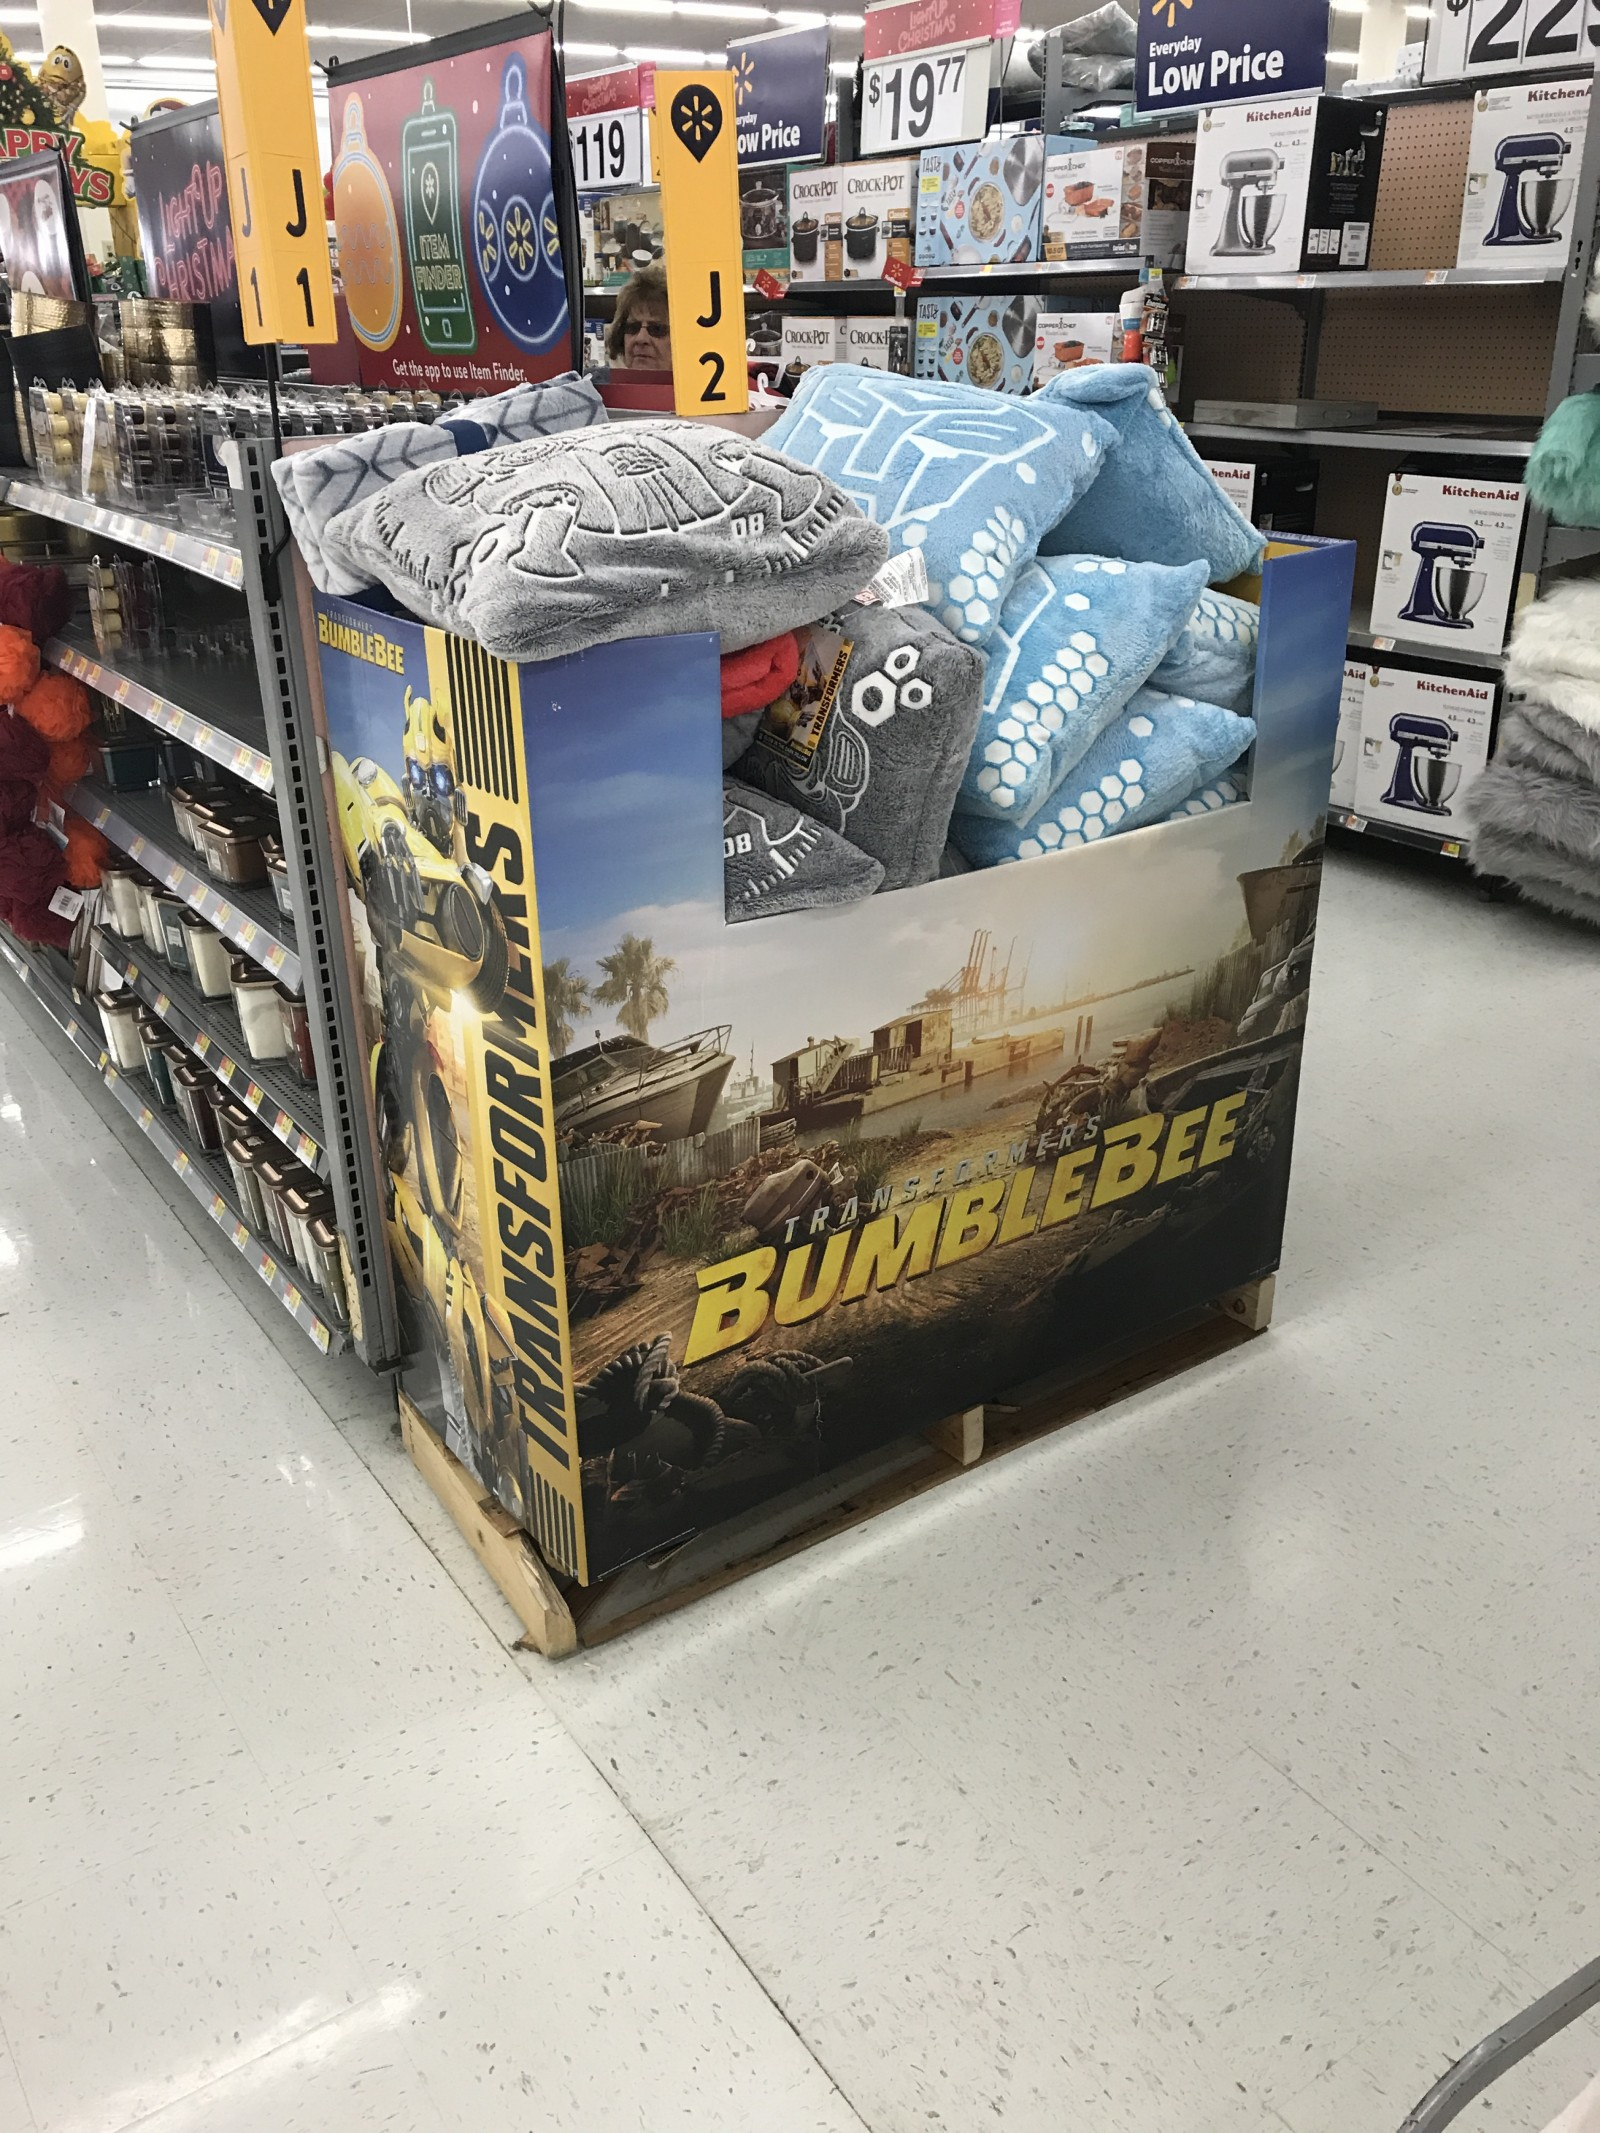 Transformers News: Transformers Bumblebee Movie Pillow Stack Found At Walmart in Centereach, NY